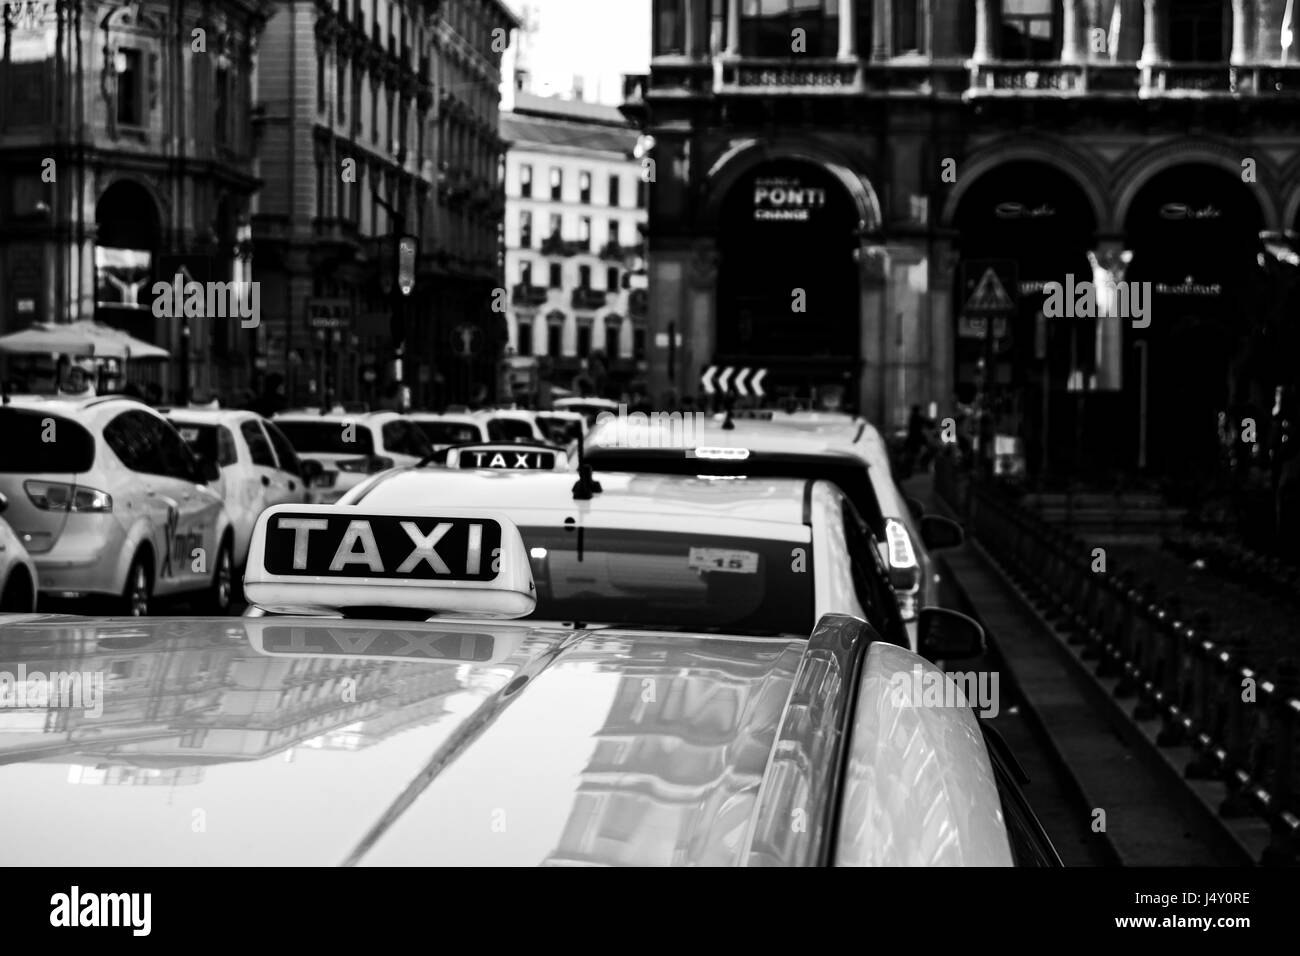 view of taxy parked in a row on a street in milan - Stock Image